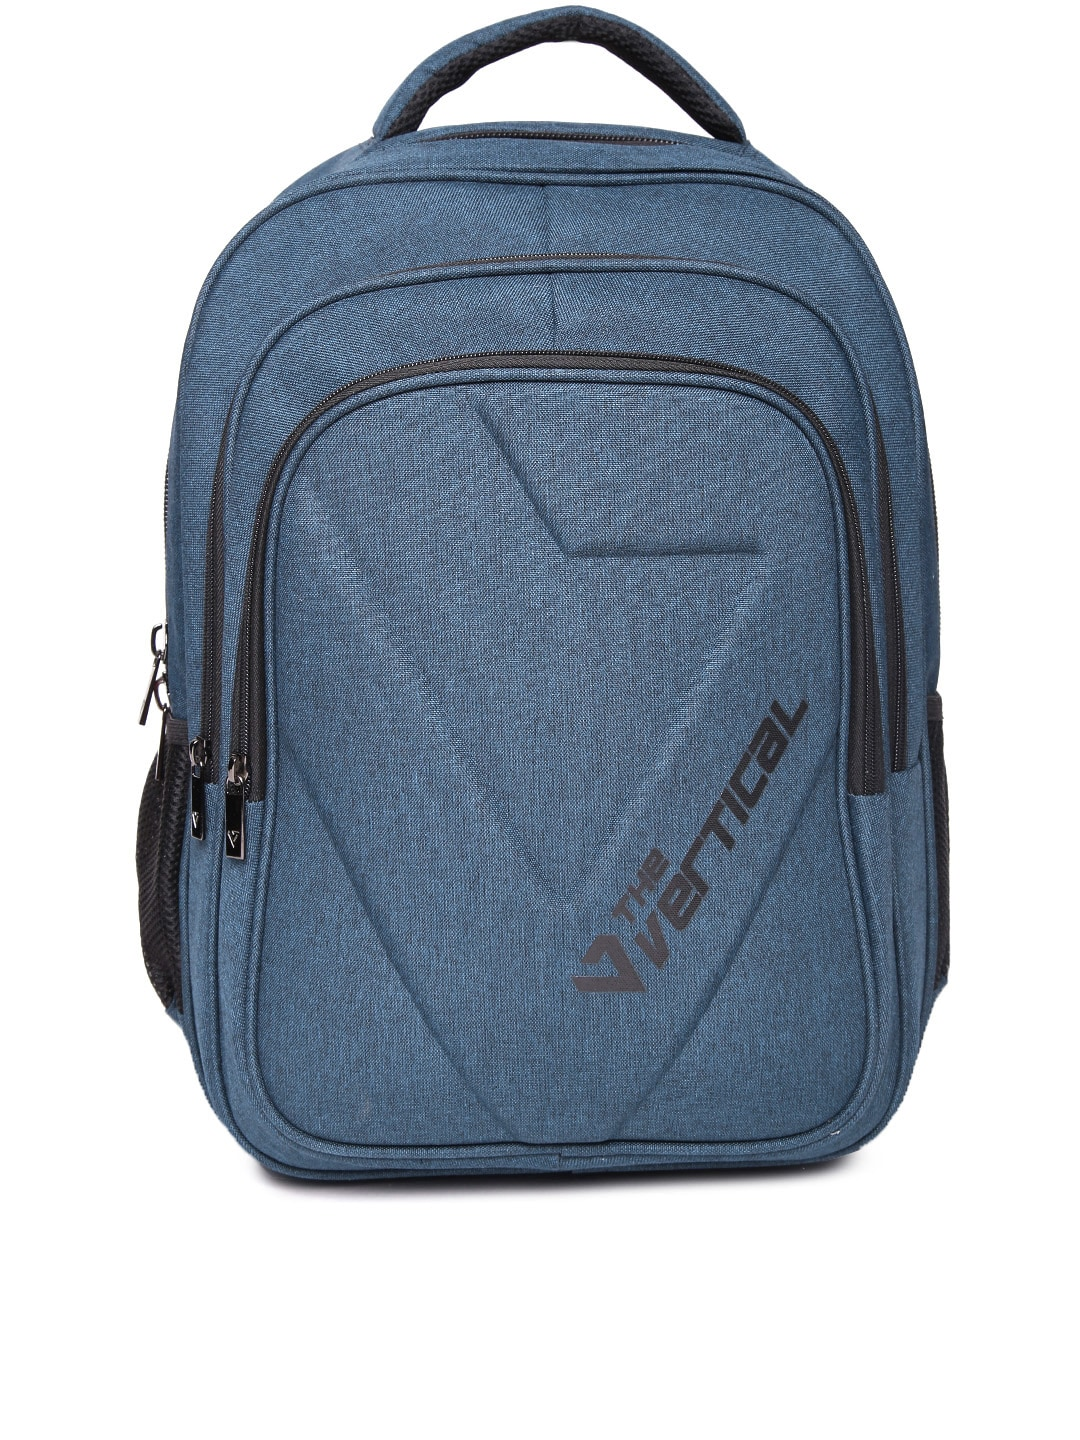 Laptop Bag - Buy Laptop Bags   Backpack Online in India  e83cc50856cd7